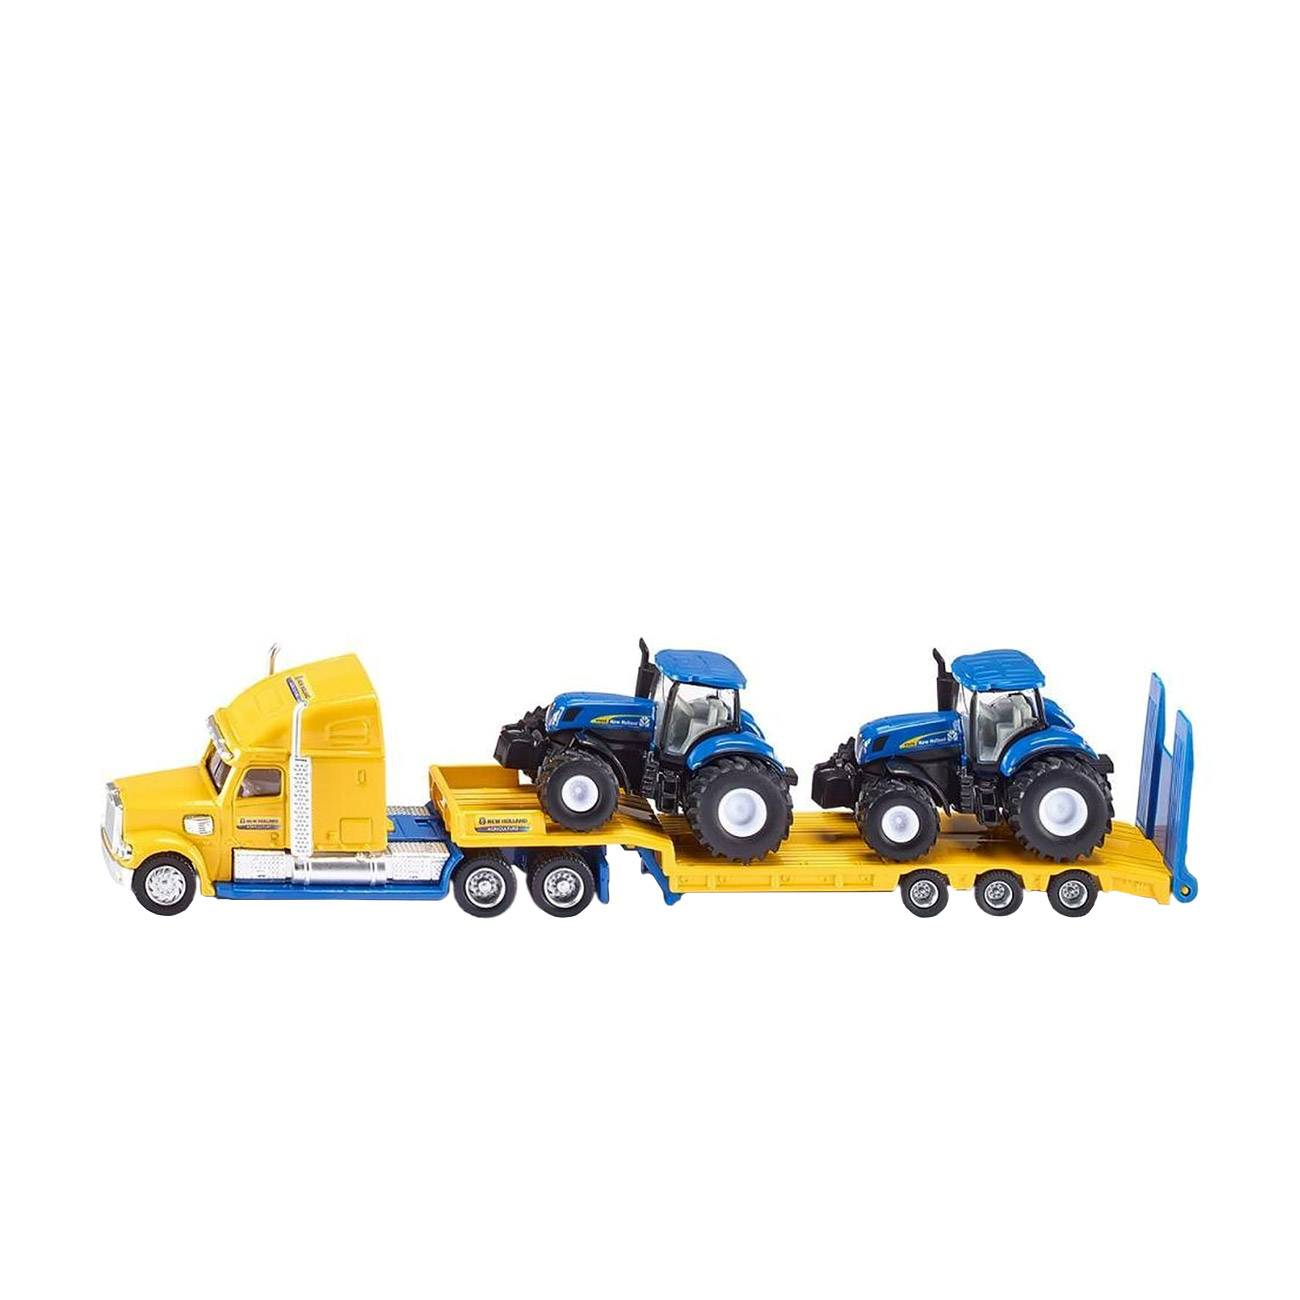 TRUCK WITH NEW HOLLAND TRACTORS